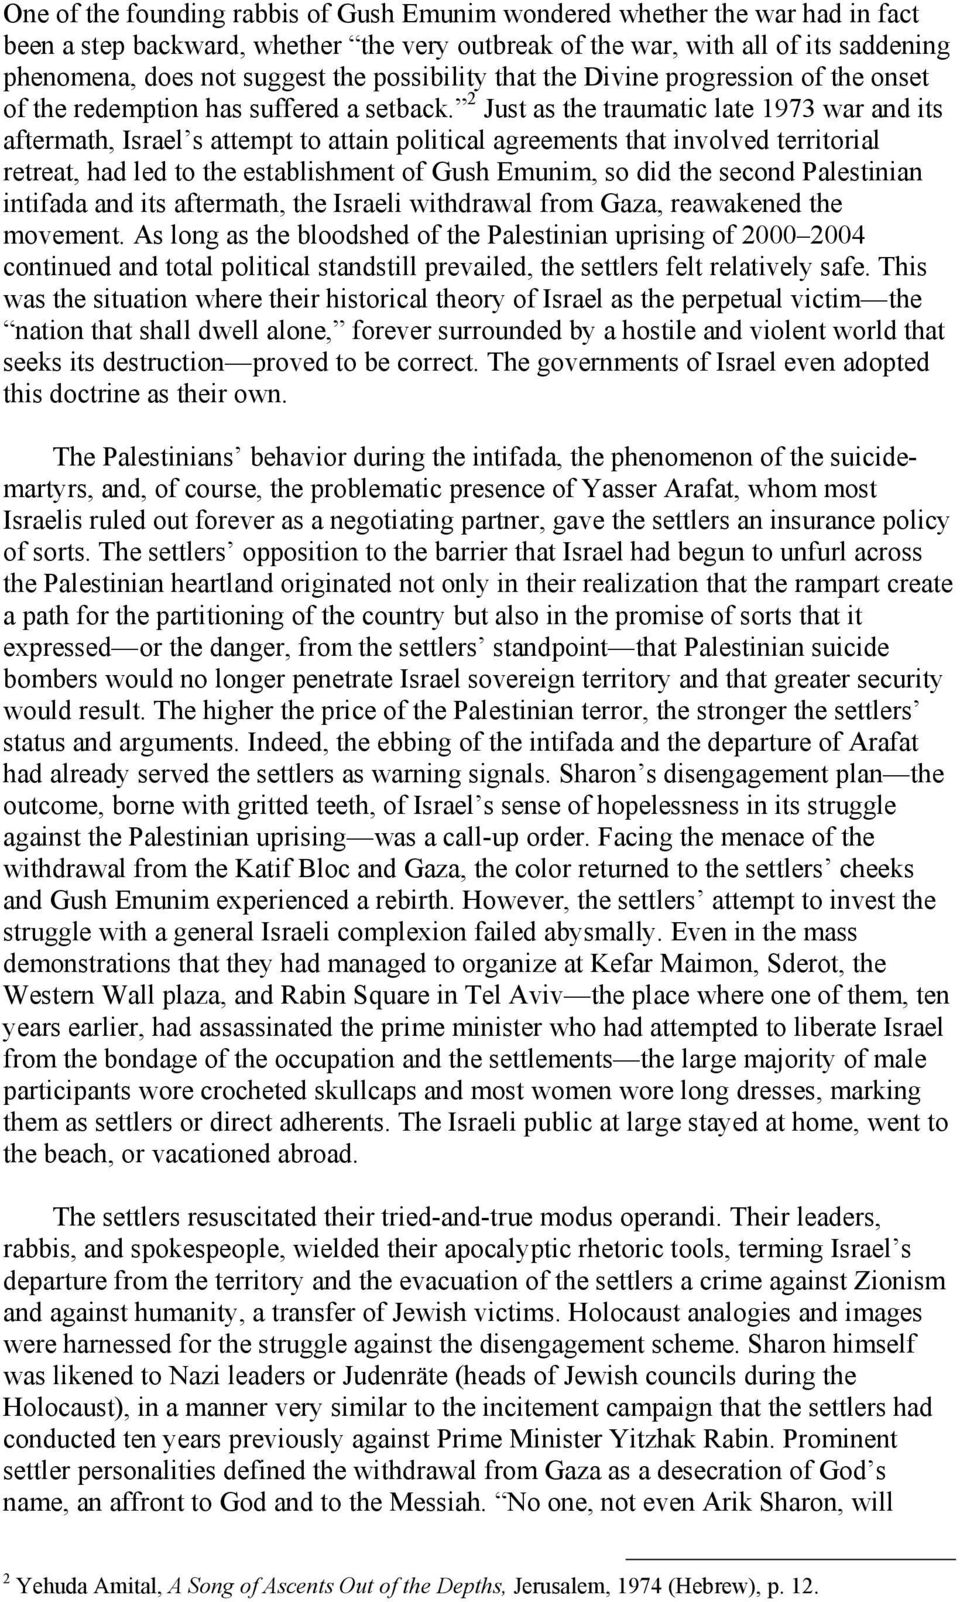 2 Just as the traumatic late 1973 war and its aftermath, Israel s attempt to attain political agreements that involved territorial retreat, had led to the establishment of Gush Emunim, so did the